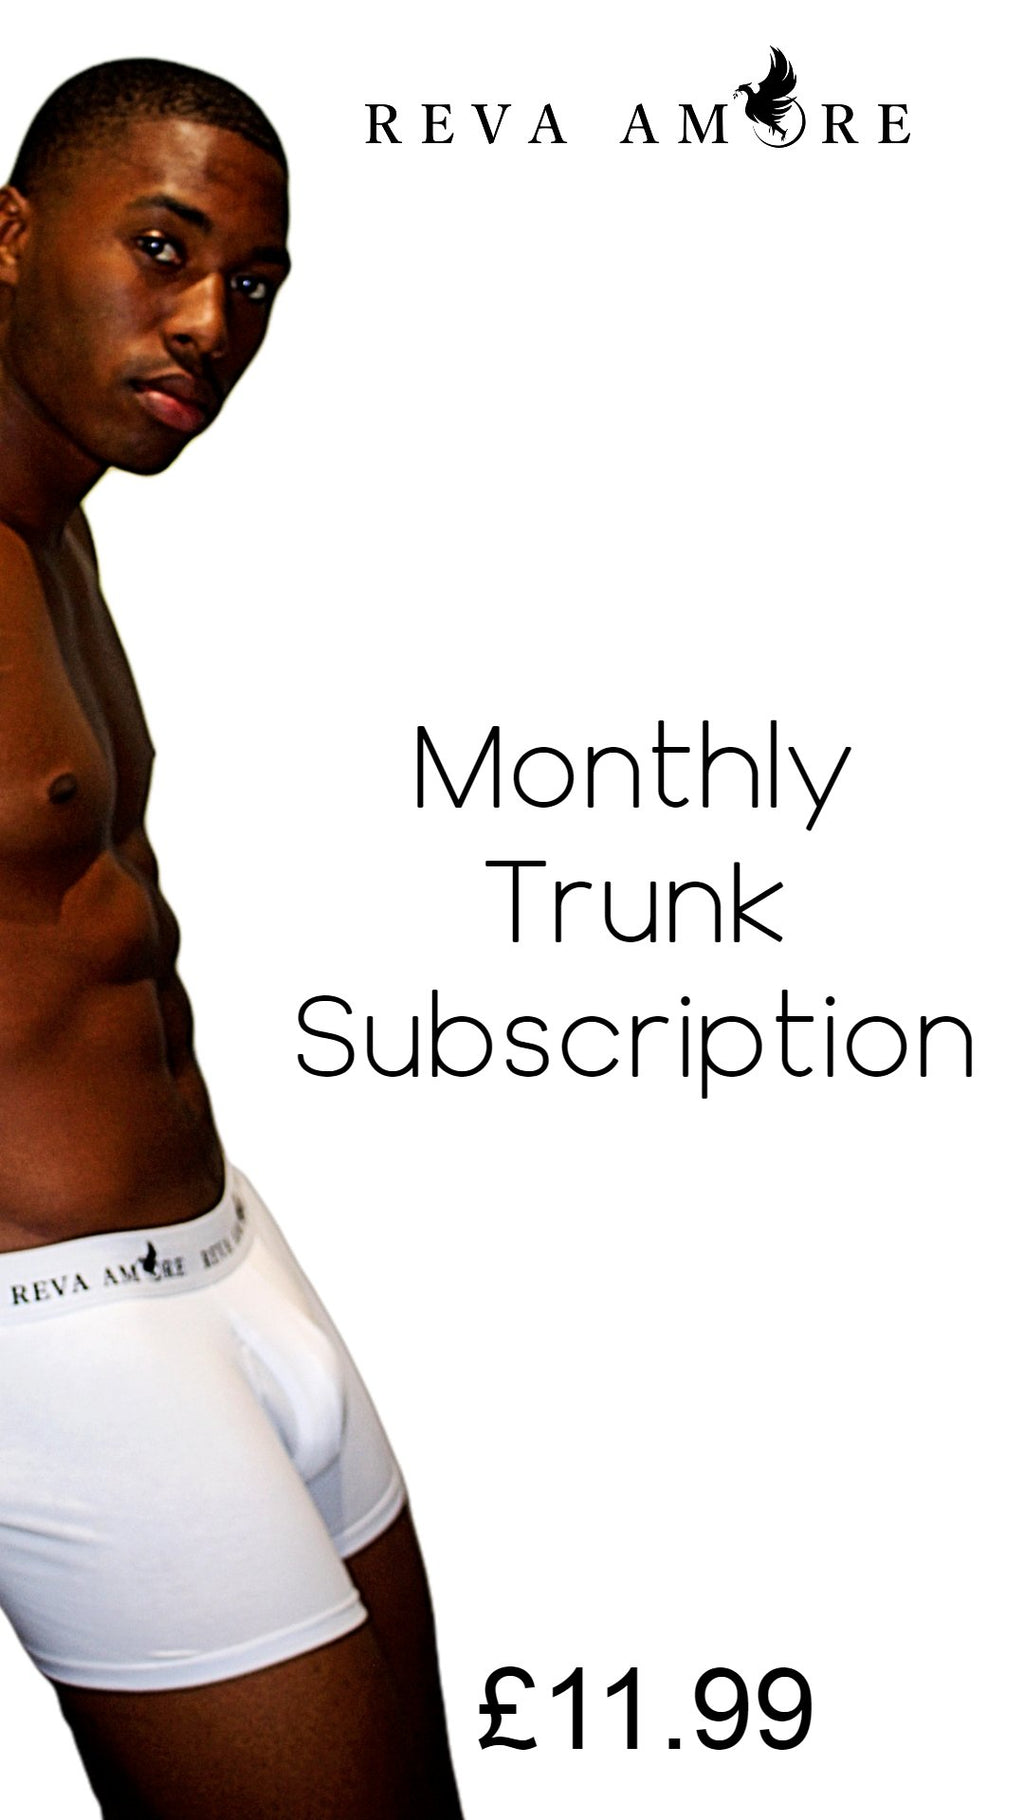 Monthly Trunk Subscription - REVA AMORE